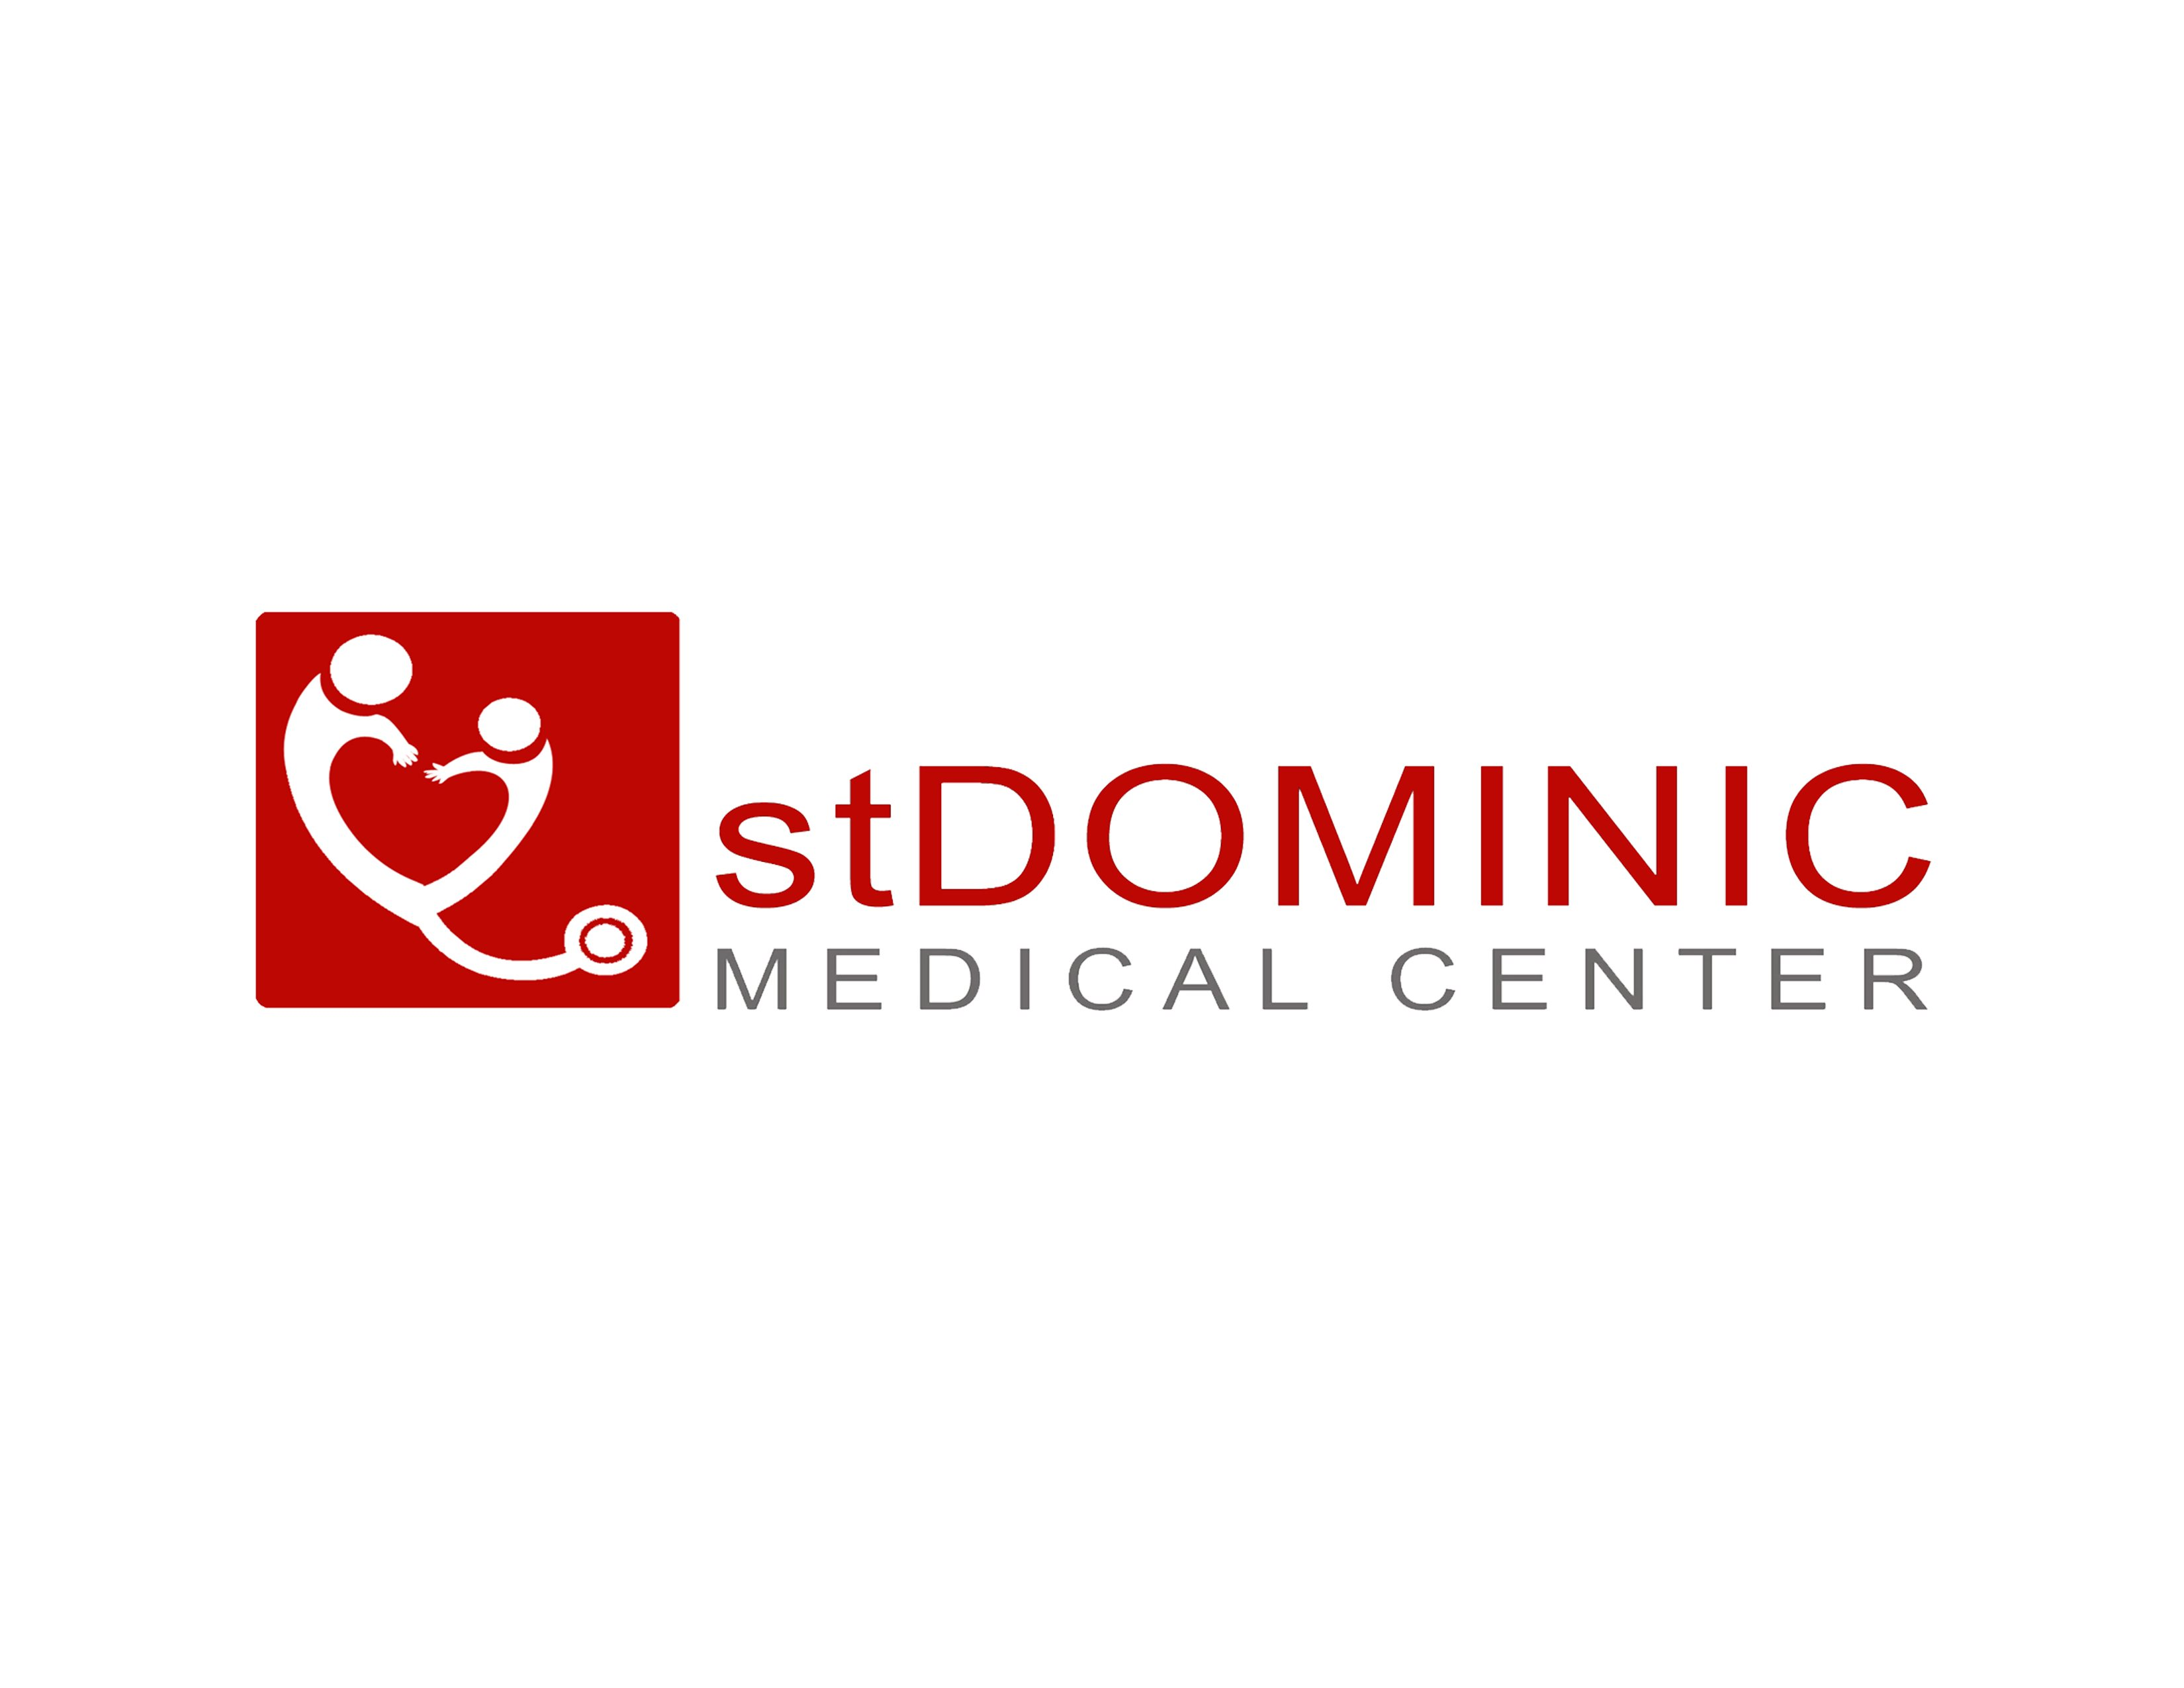 St. Dominic Medical Center